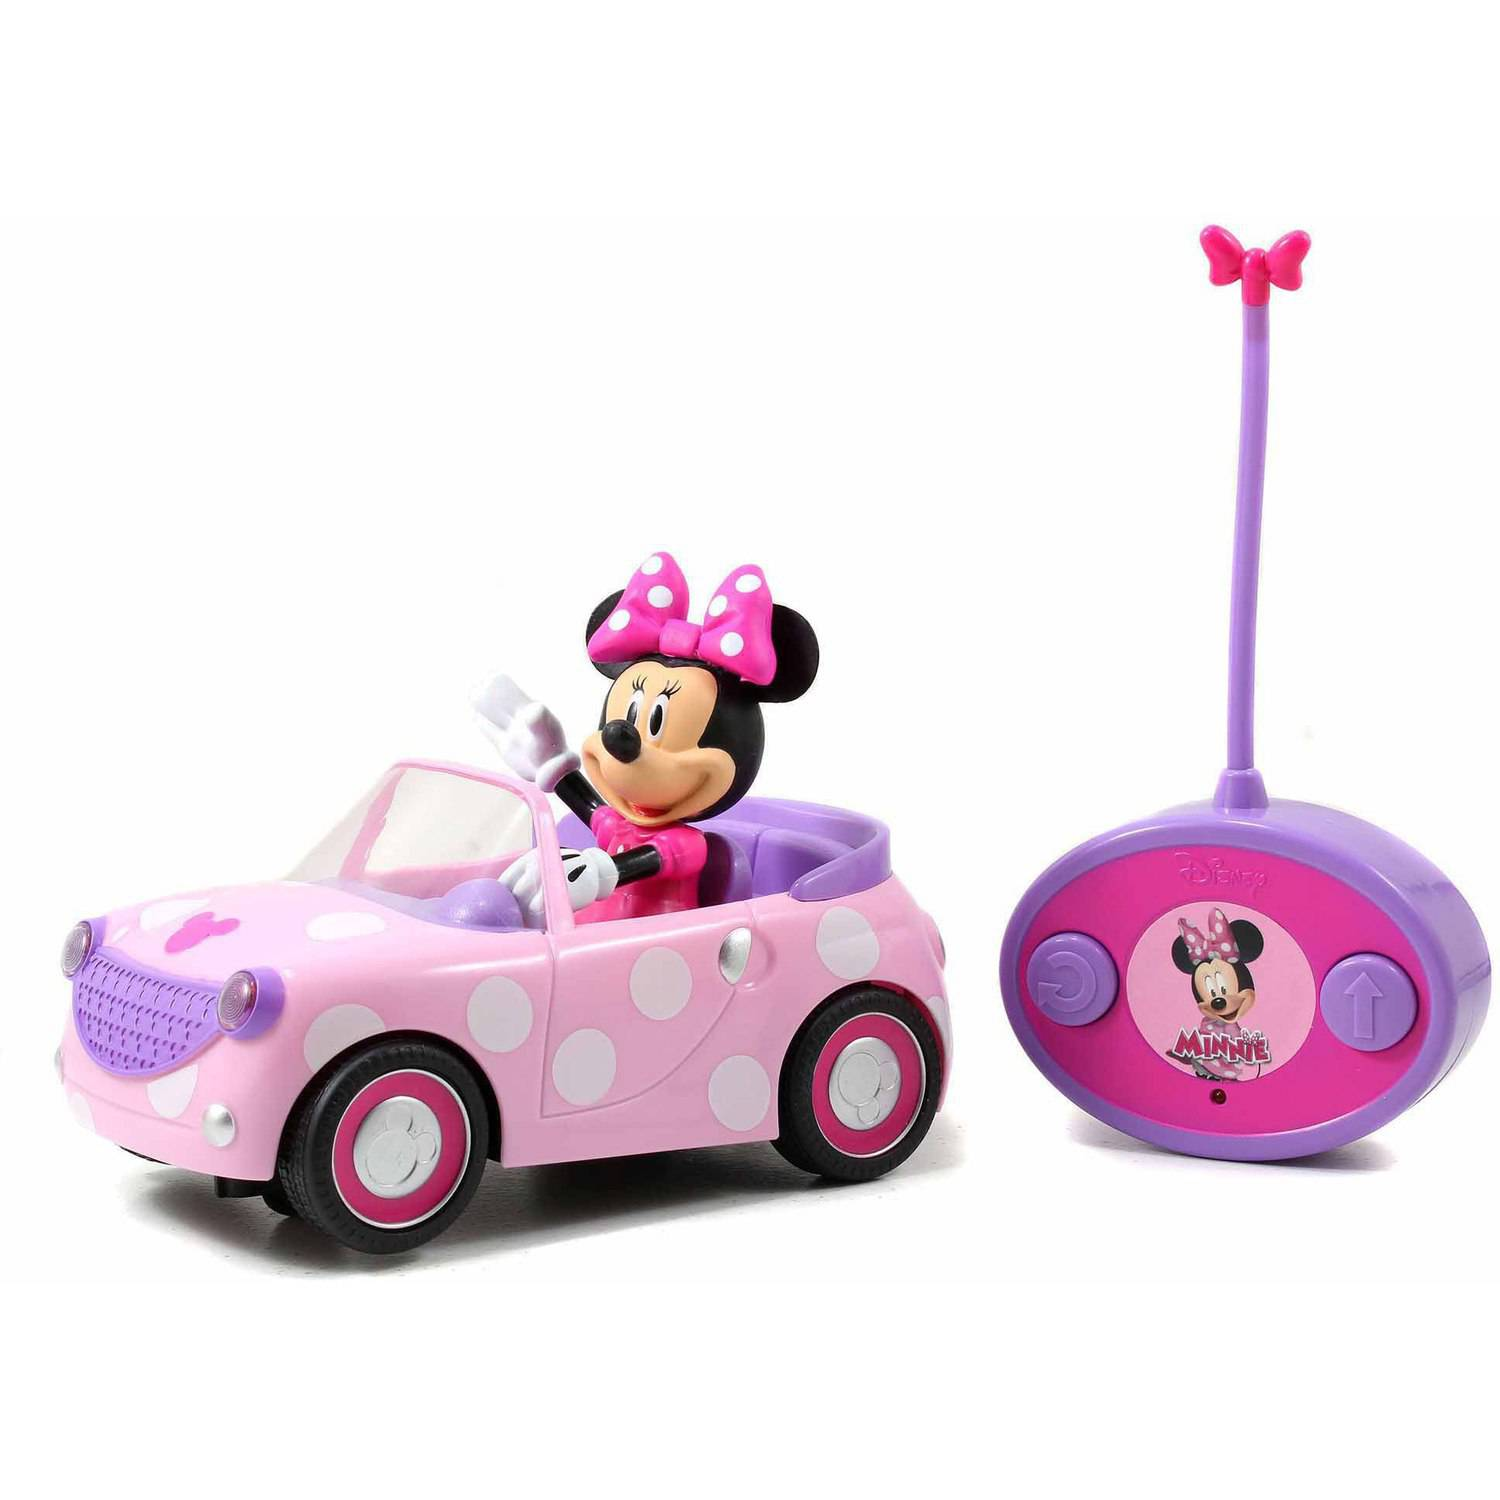 Disney Minnie Mouse R/C Vehicle, Light Pink